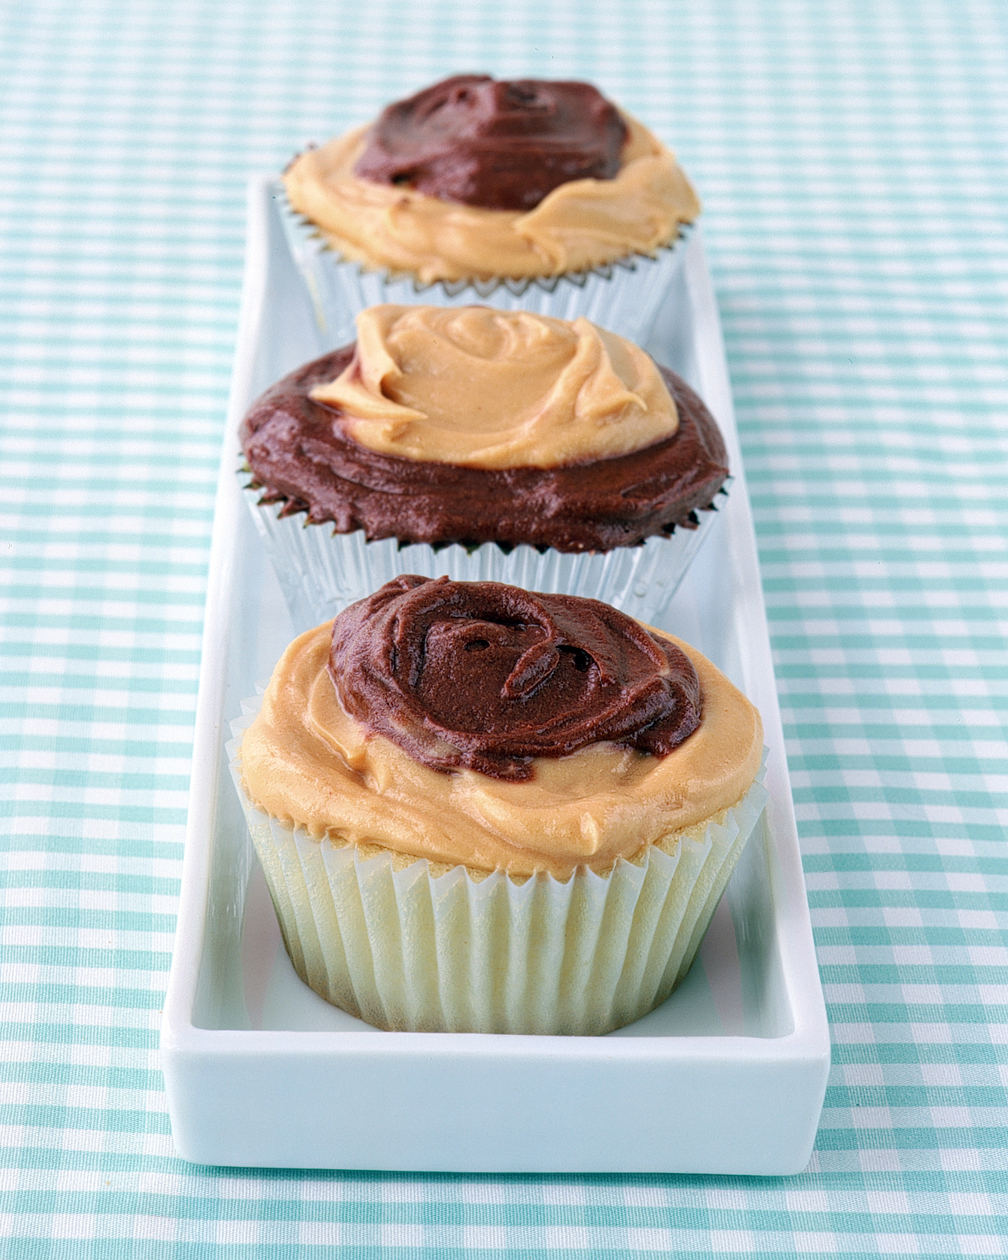 Peanut-Butter-and-Chocolate-Frosted Cupcakes